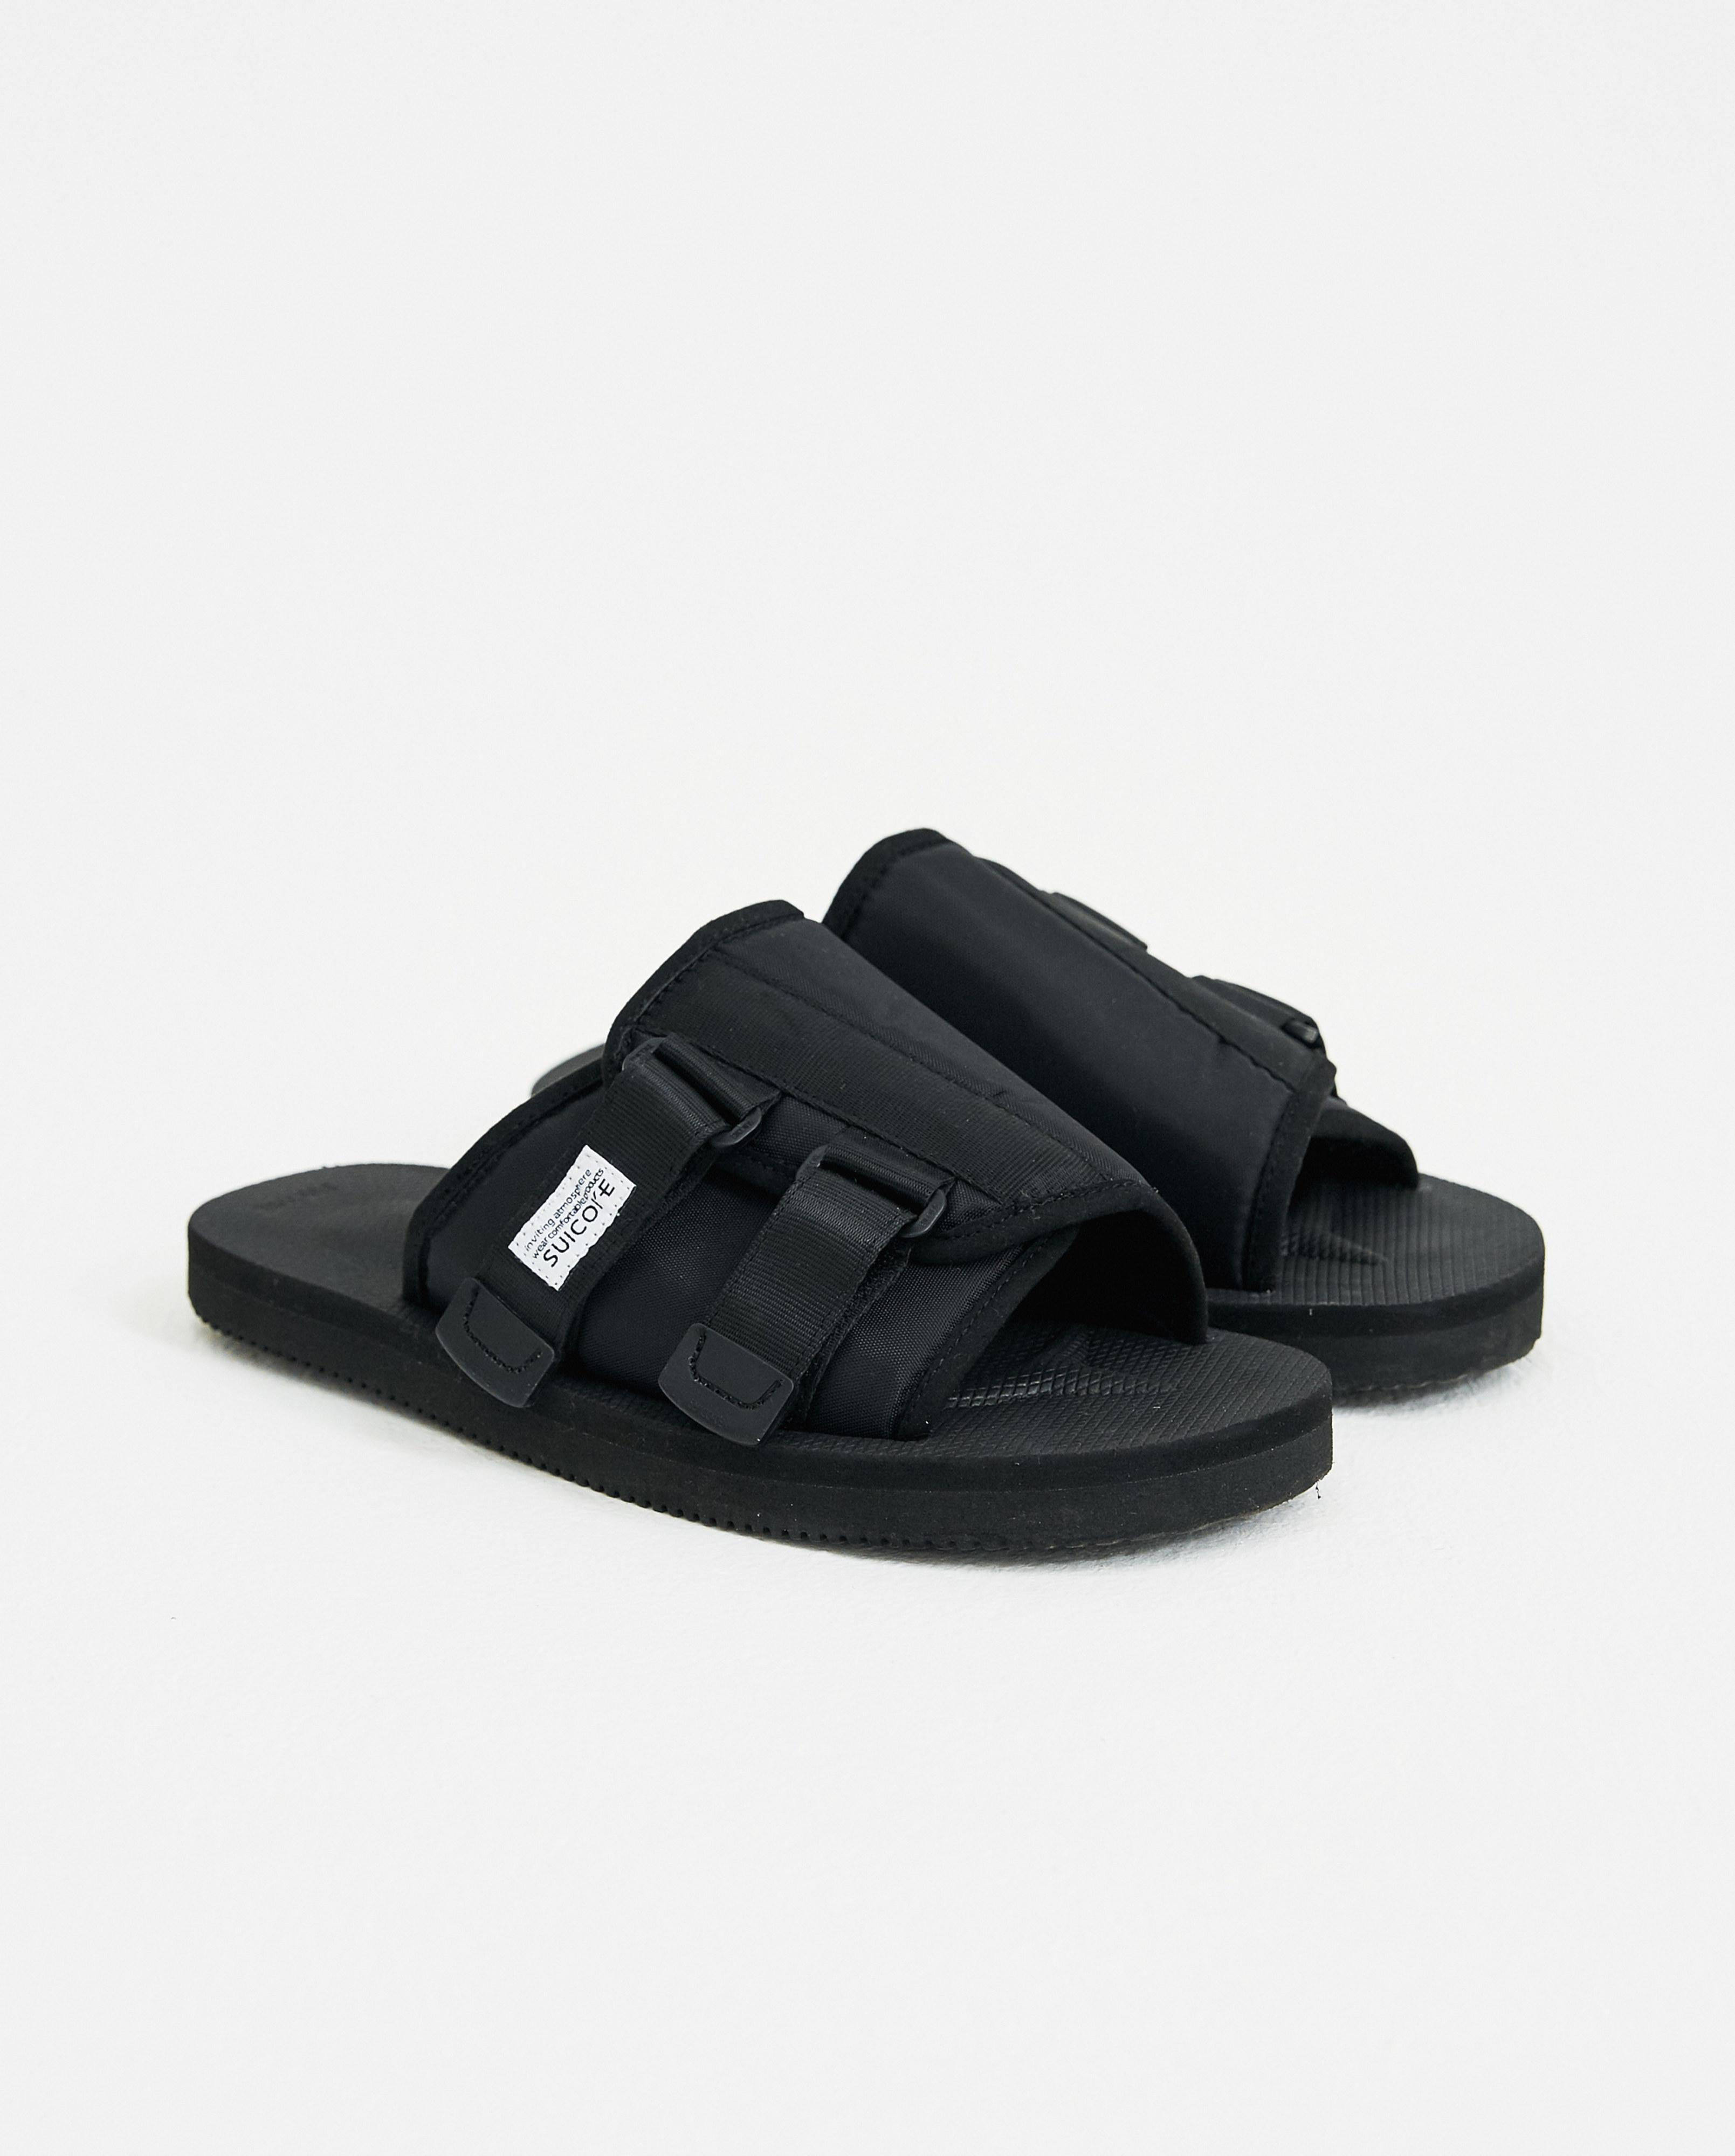 122c08da495 Suicoke Kaw Vs Sandal Slides in Black for Men - Lyst